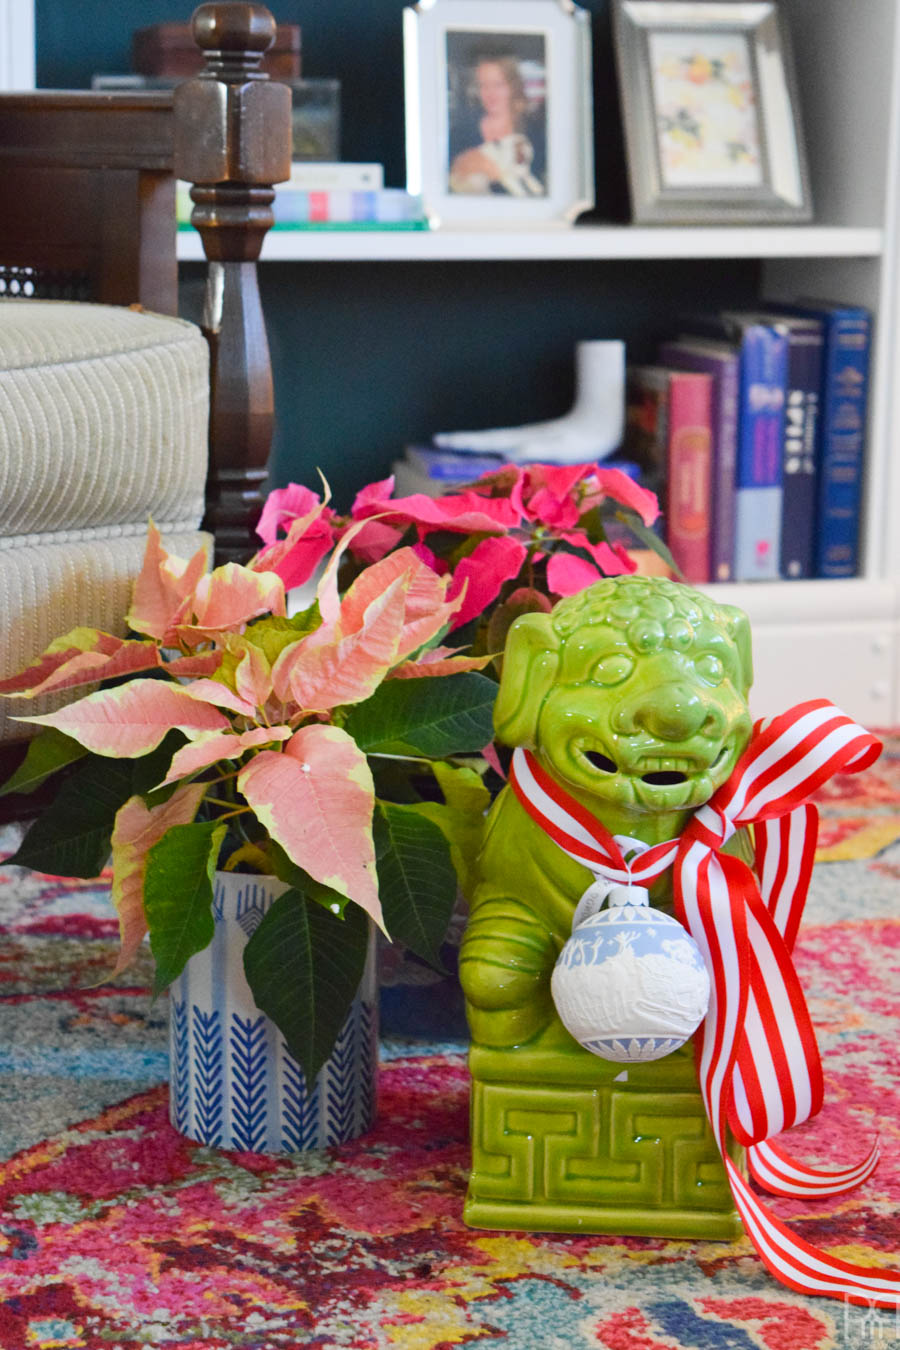 Come tour a Colourful & Eclectic Christmas Home Tour, full of rich patterns, styles and whimsical touches.